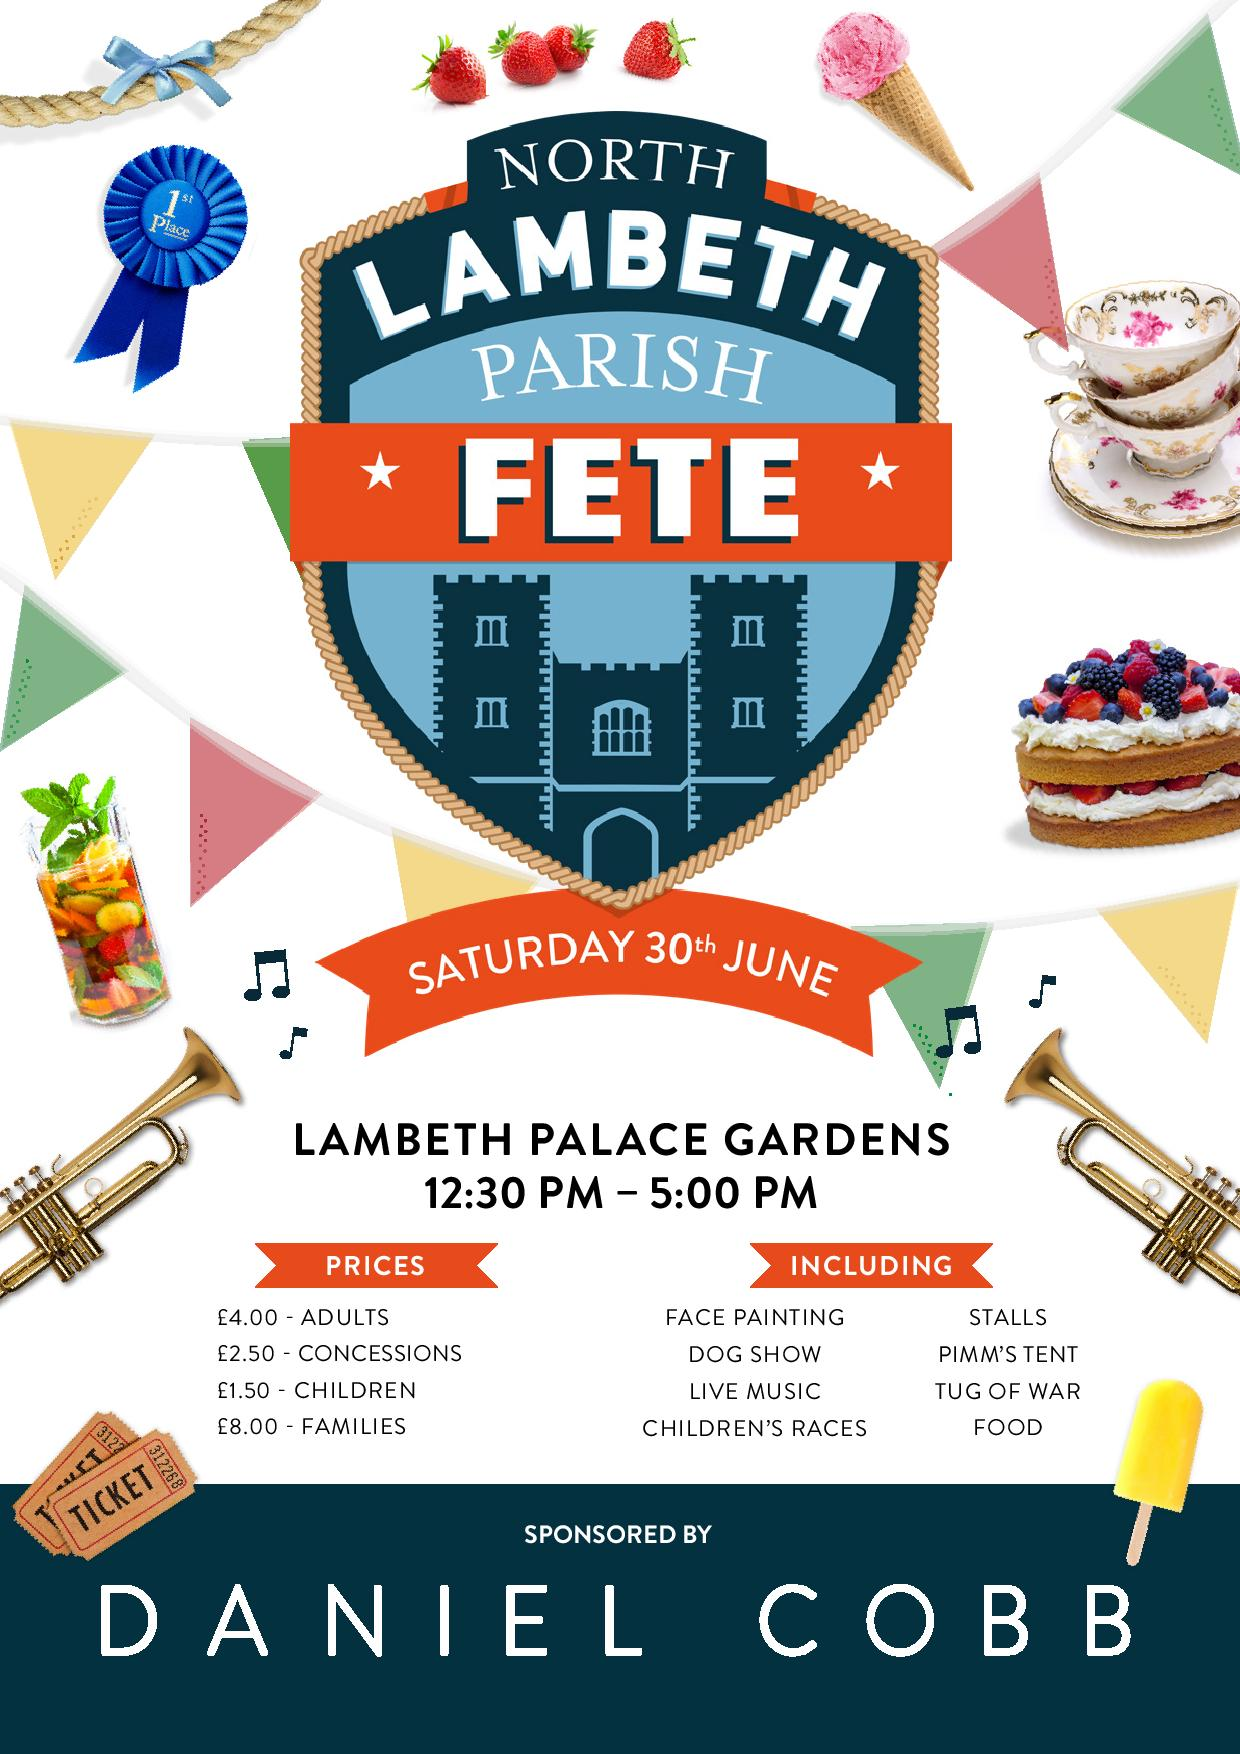 North Lambeth Parish Fete 2018